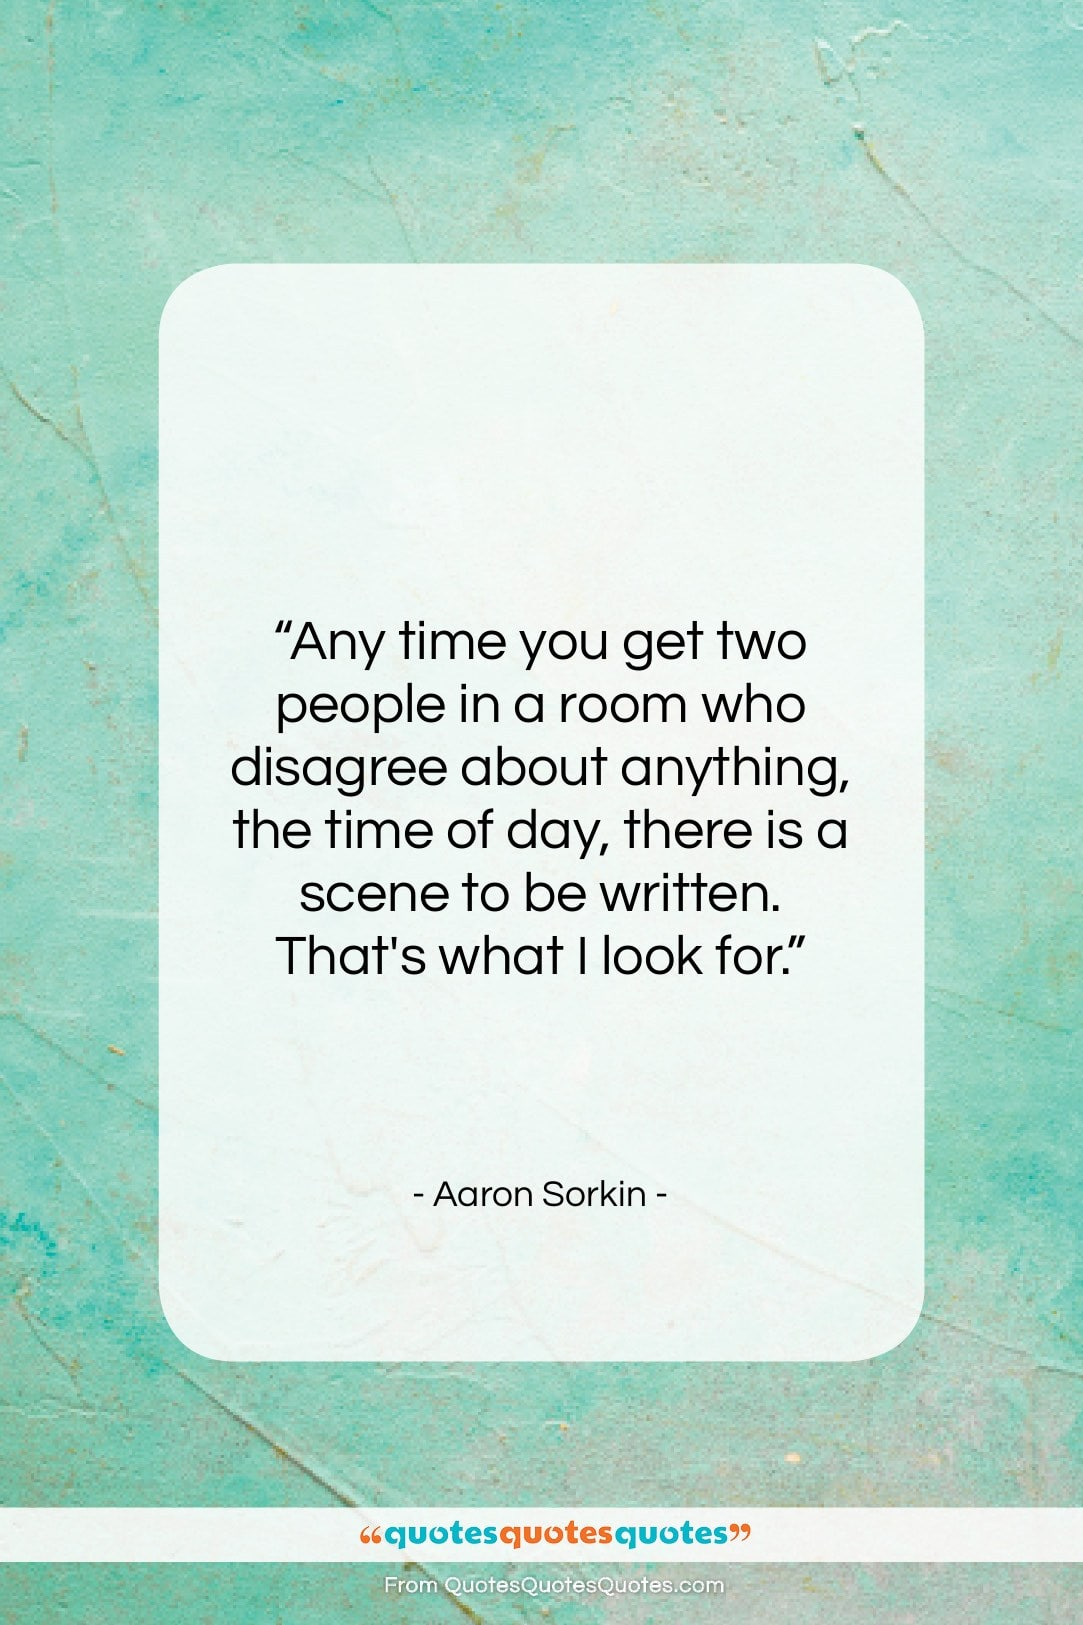 """Aaron Sorkin quote: """"Any time you get two people in…""""- at QuotesQuotesQuotes.com"""